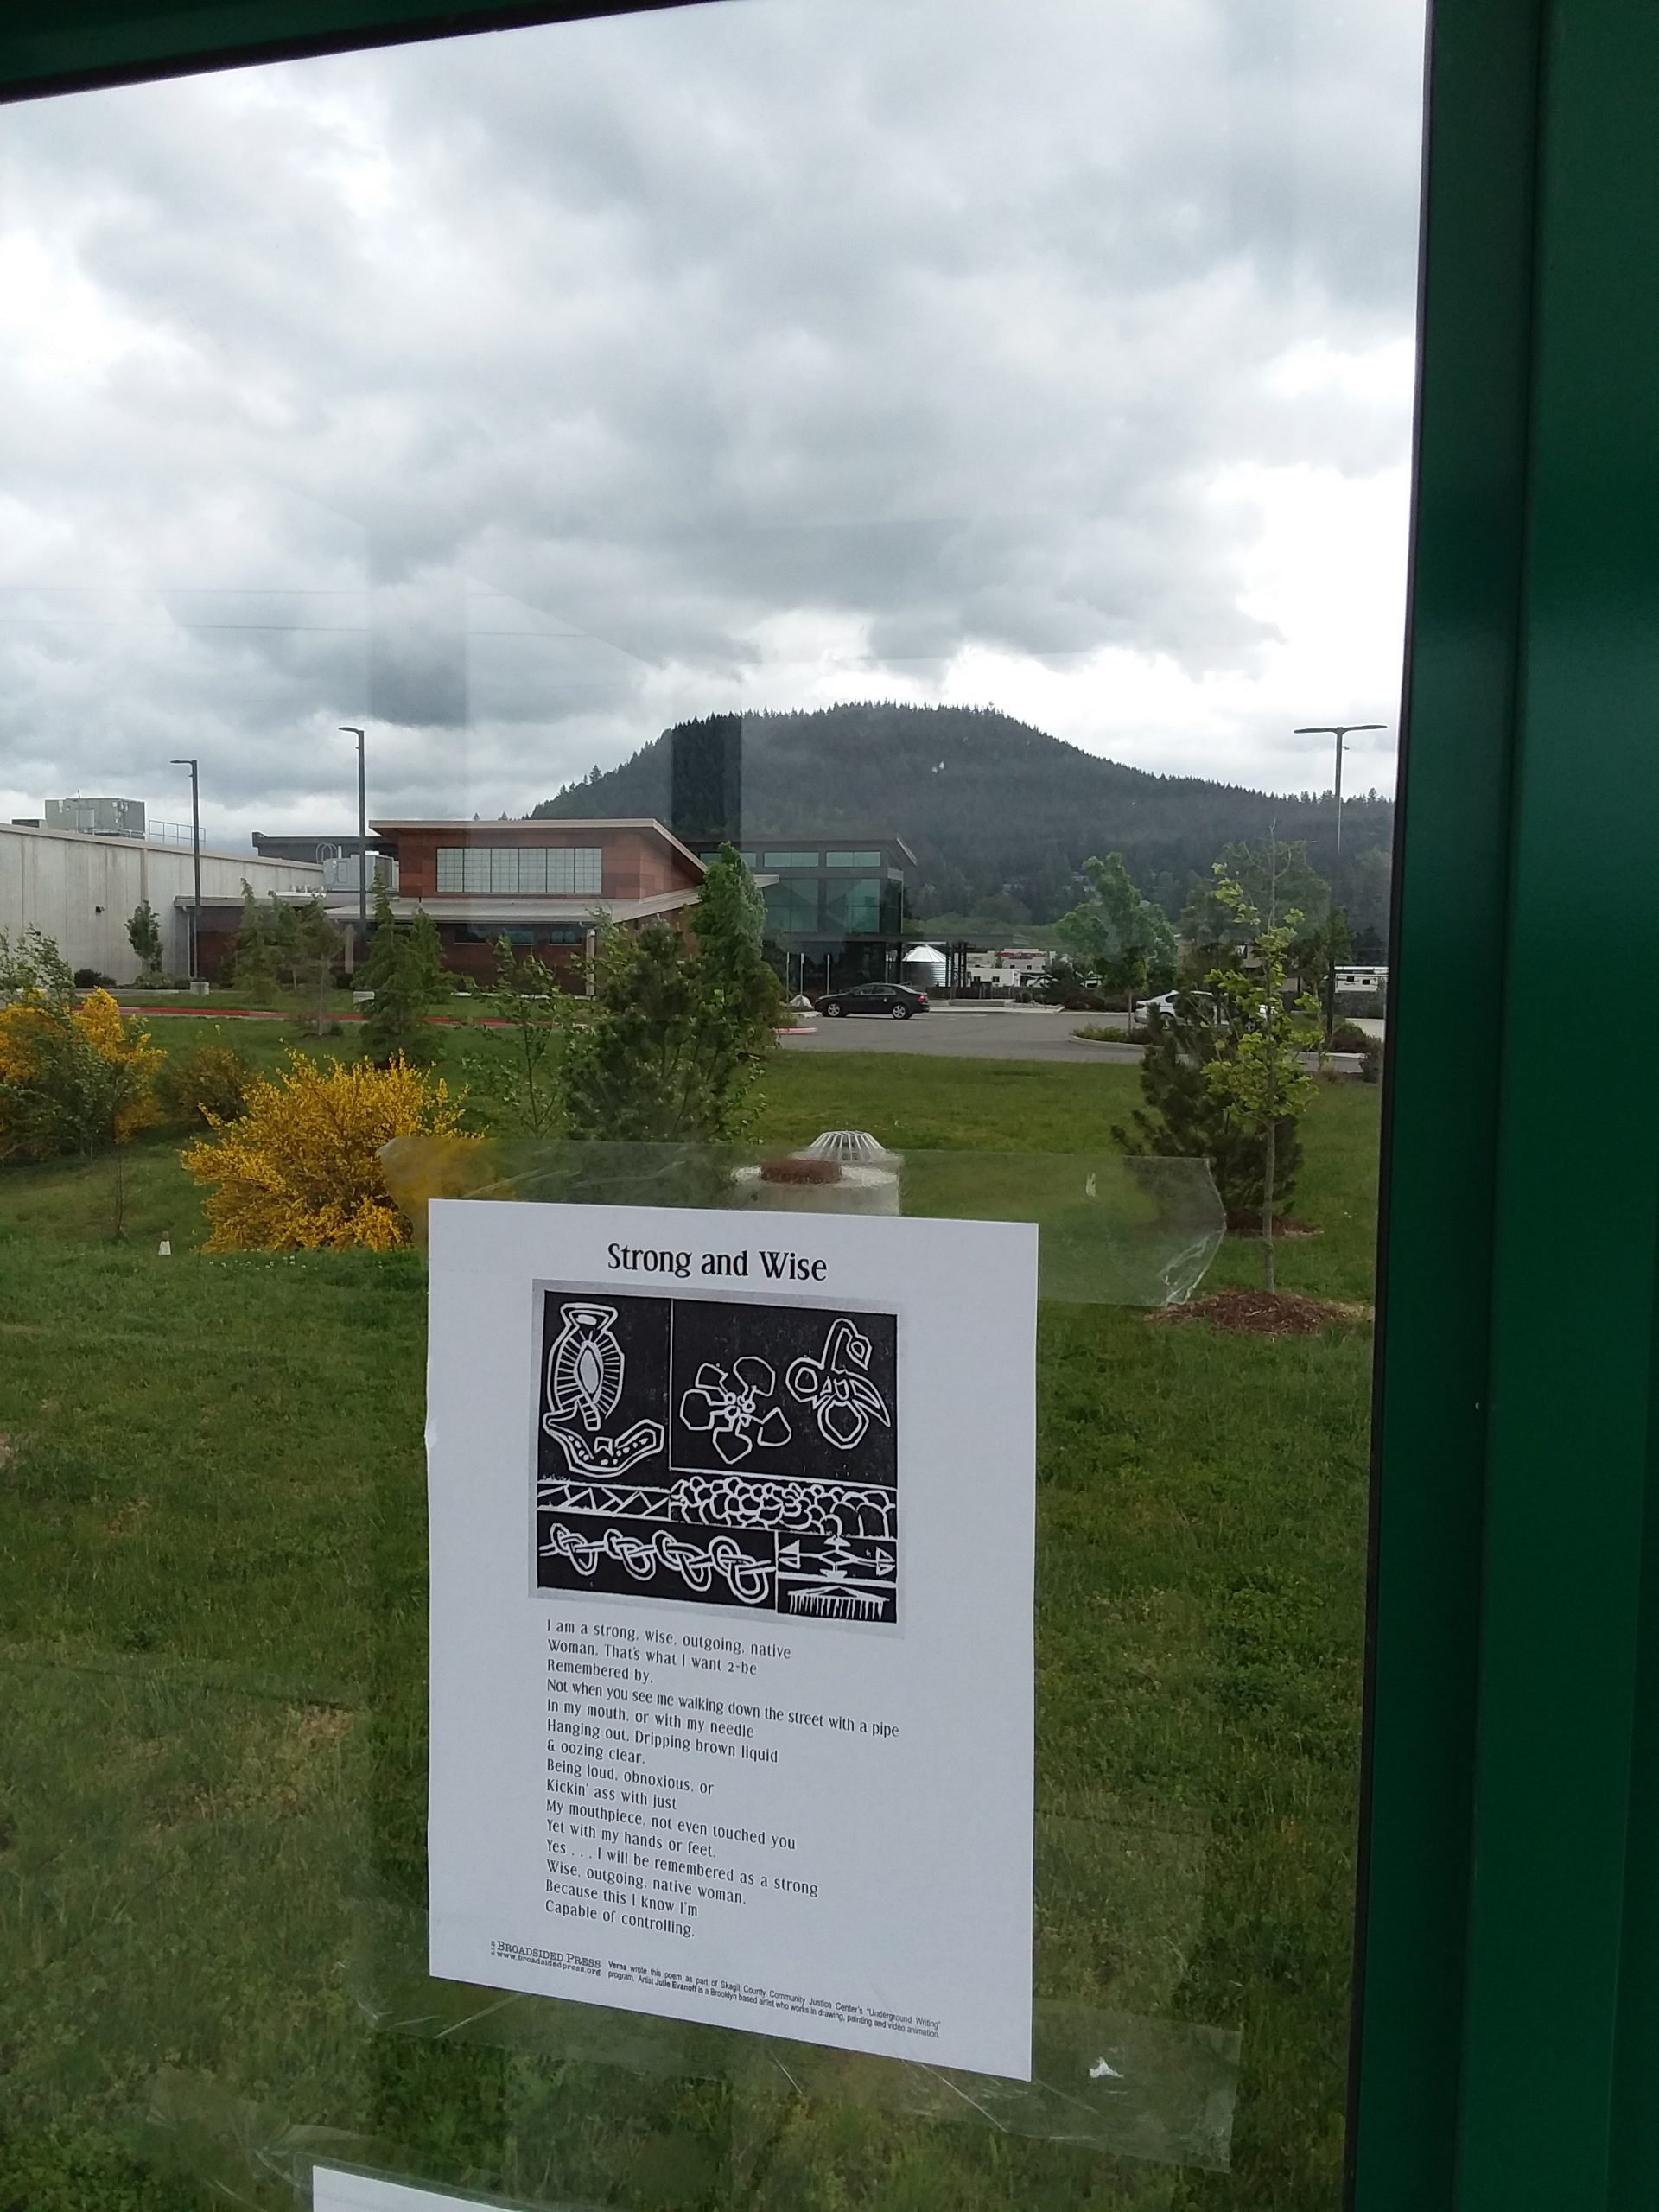 The broadside posted on a glass window beyond which stands the correctional facility where the poem was written.